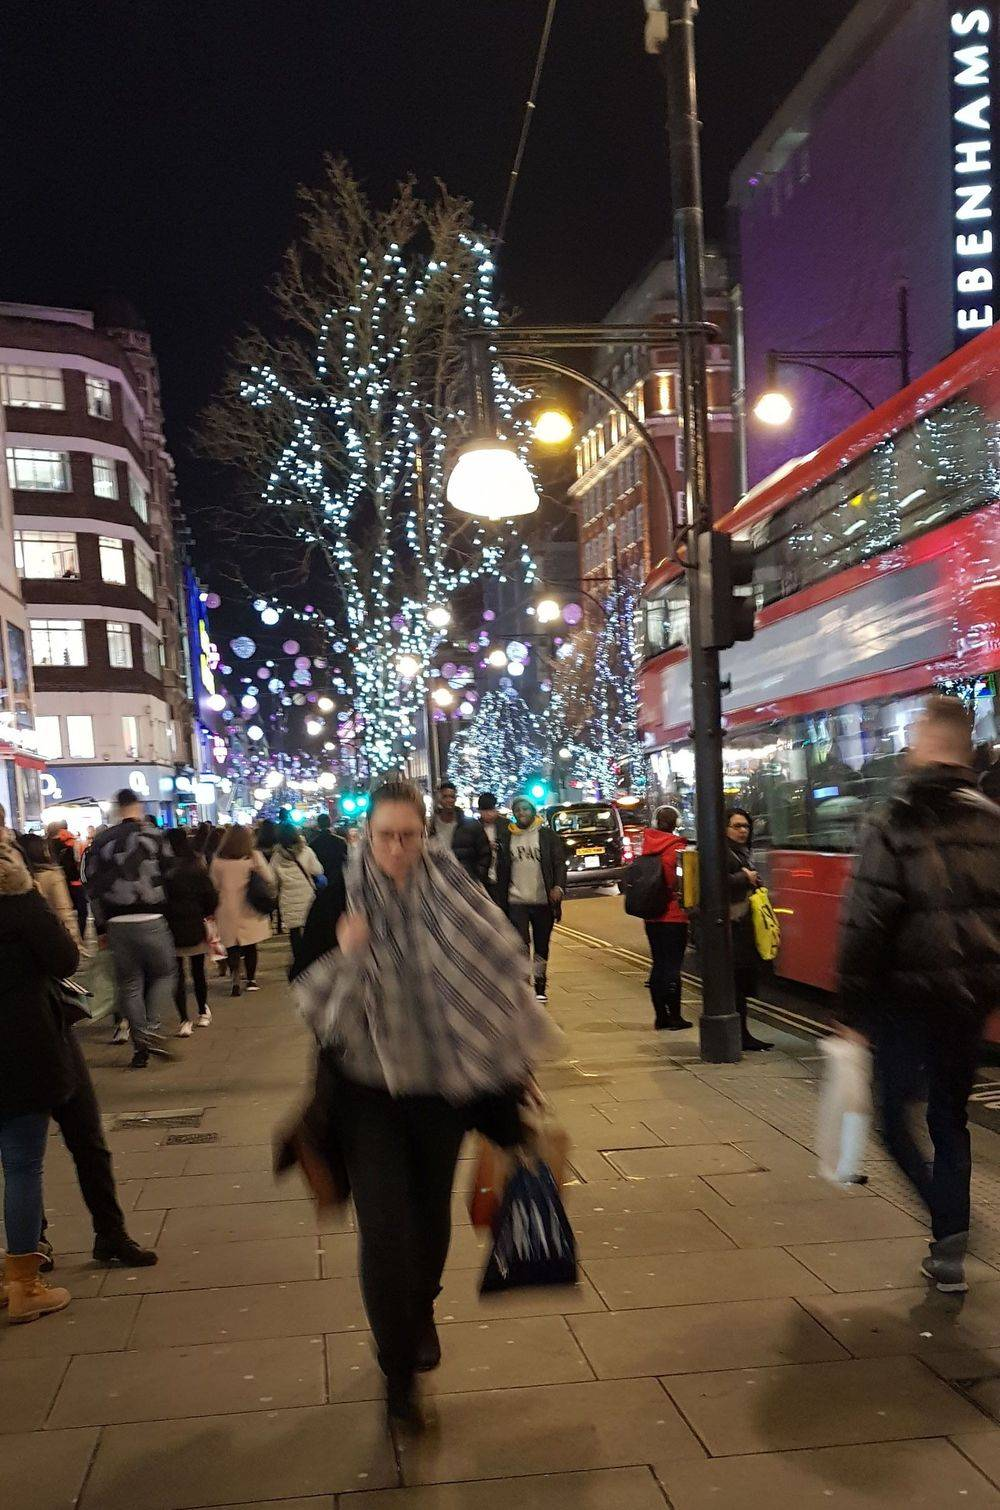 red buses of london, double decker buses of london ,selfridges oxford street london ,christmas shopping in oxford street london ,christmas lights in london ,oxford street london ,british & far east traders & partners, christmas time in london united kingdom, christmas in hyde park